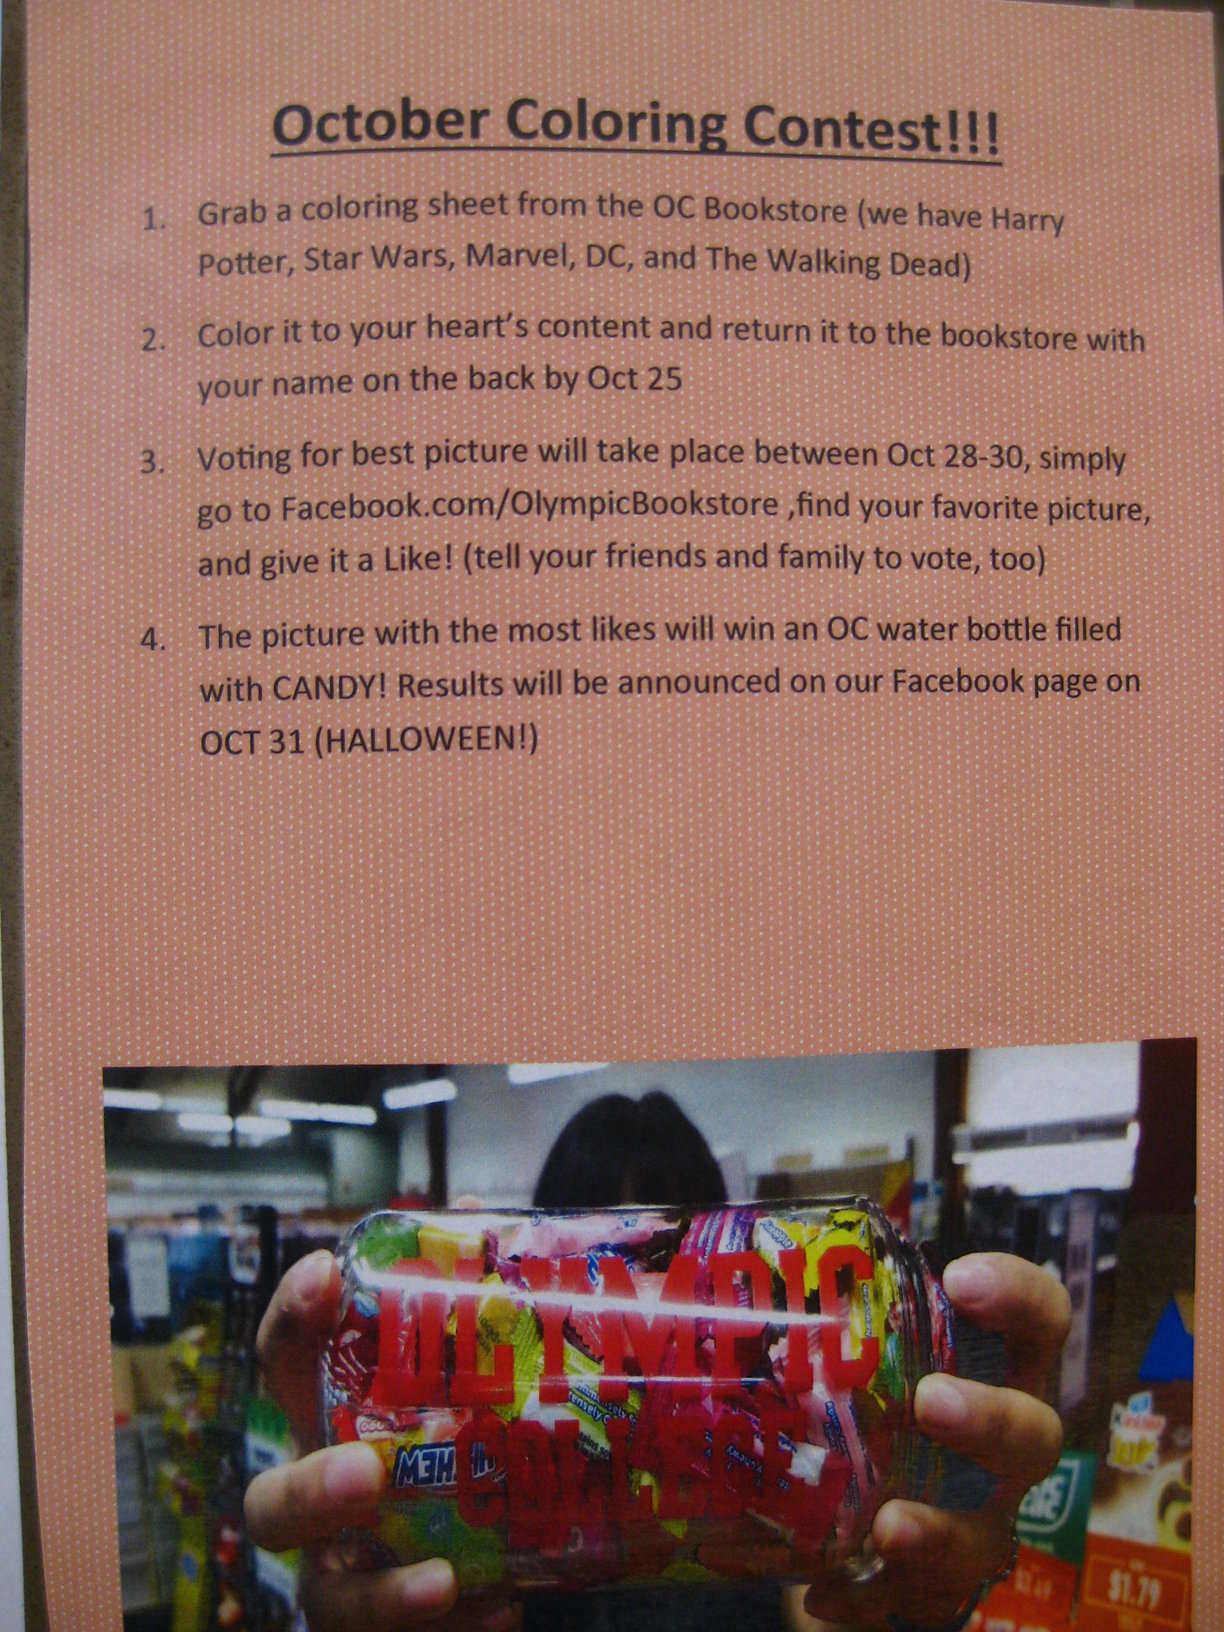 Halloween Coloring Contest flyer with a picture of bottled candy and informations about the contest